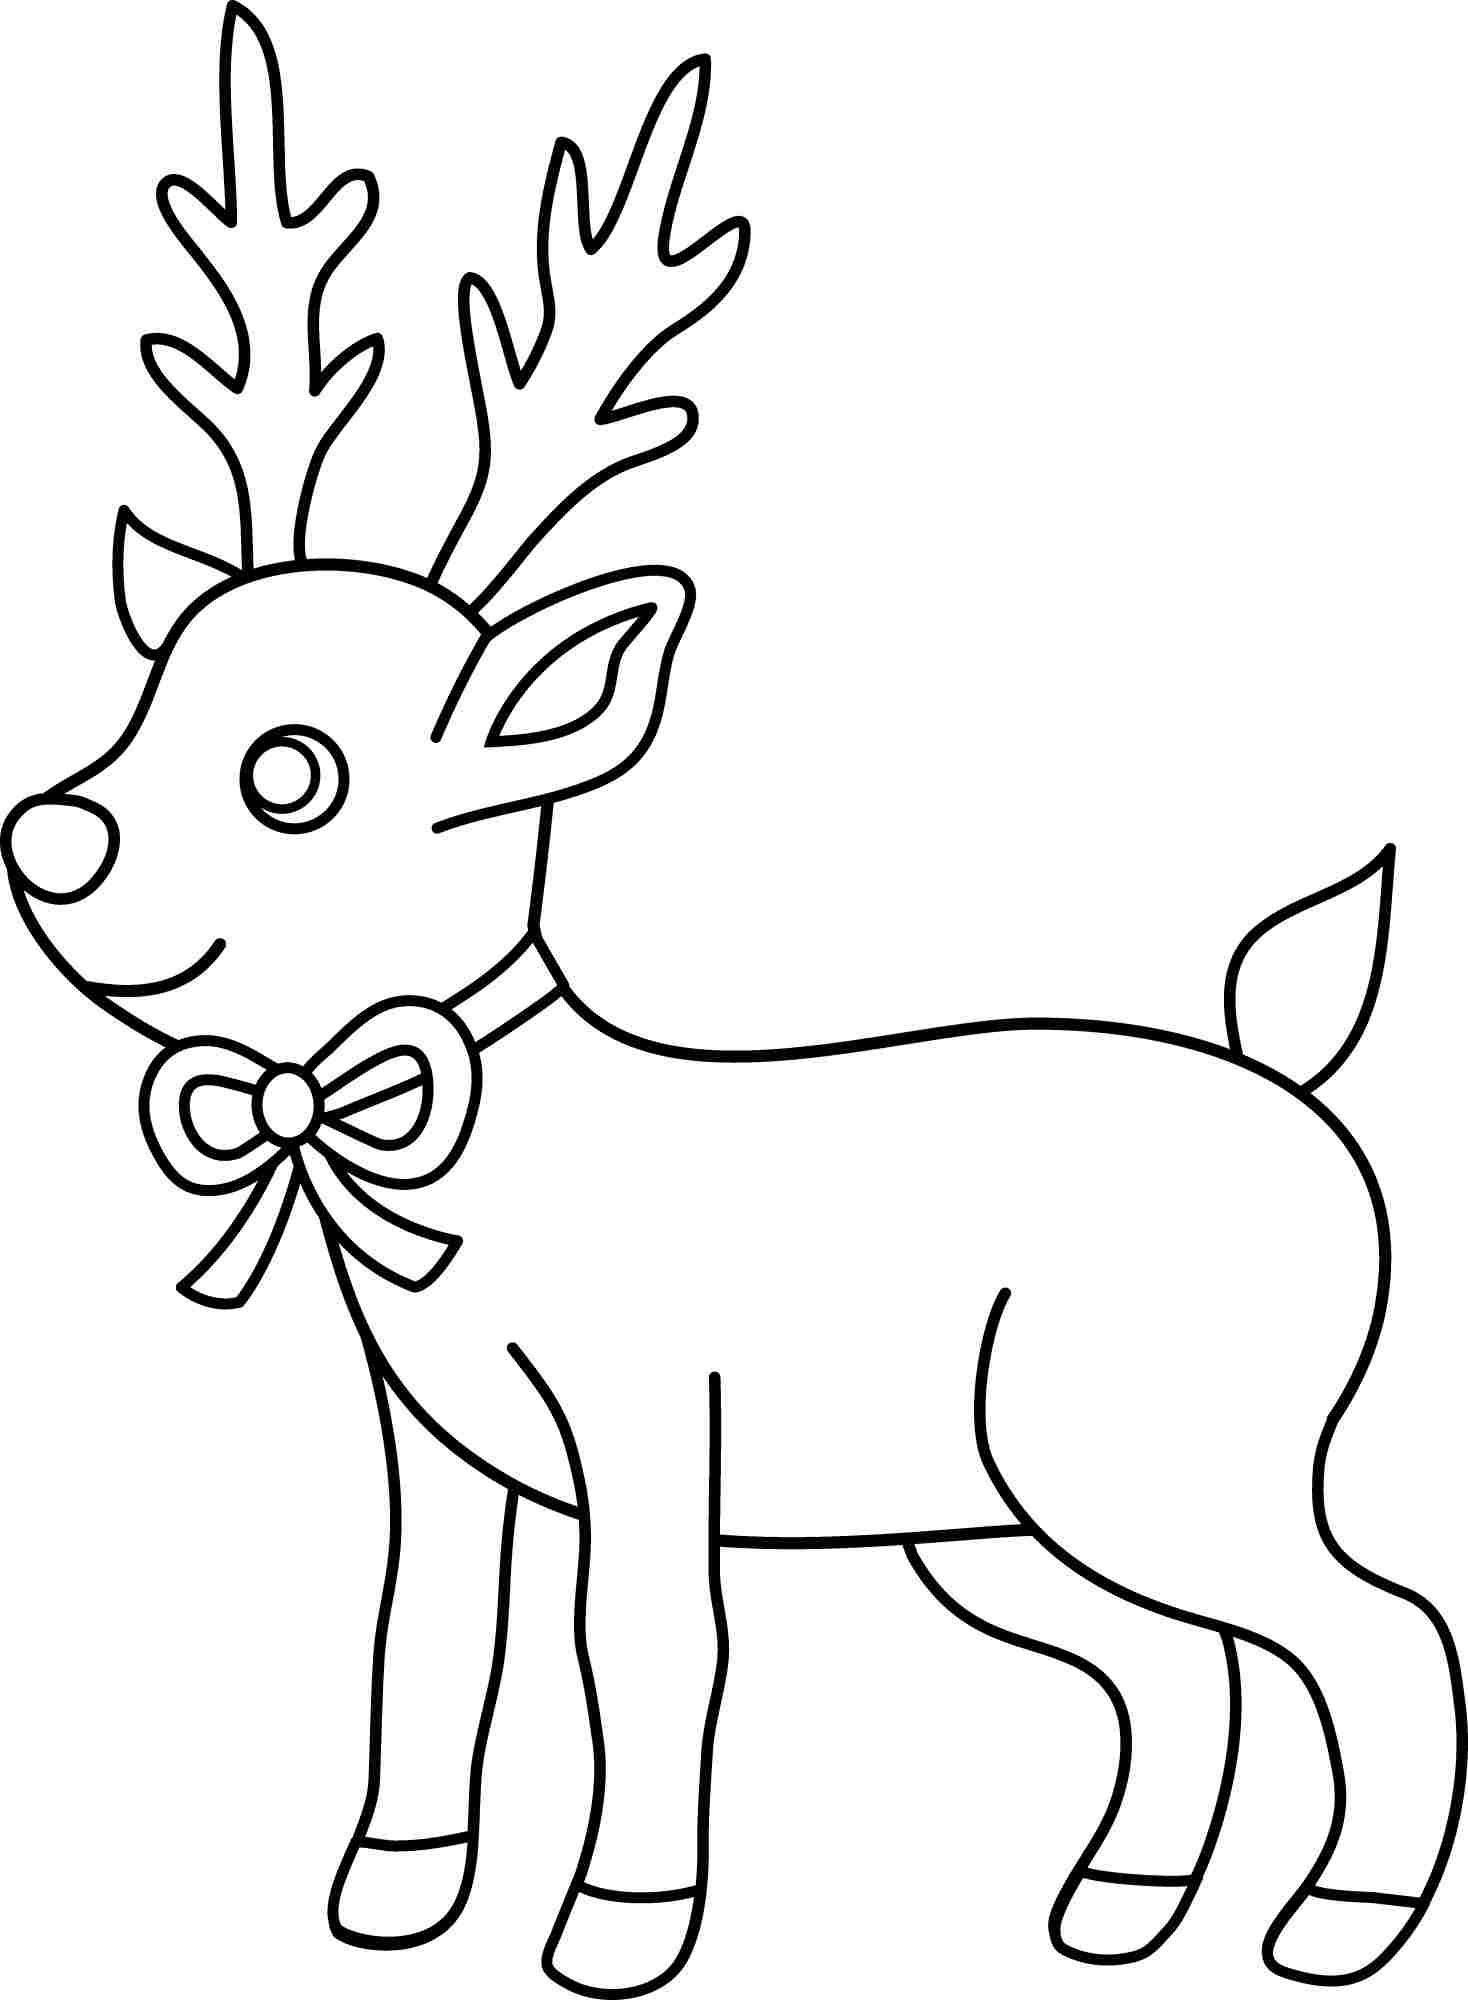 Christmas Coloring Pages Simple With For Kids Has Baby Jesus Ornaments Id